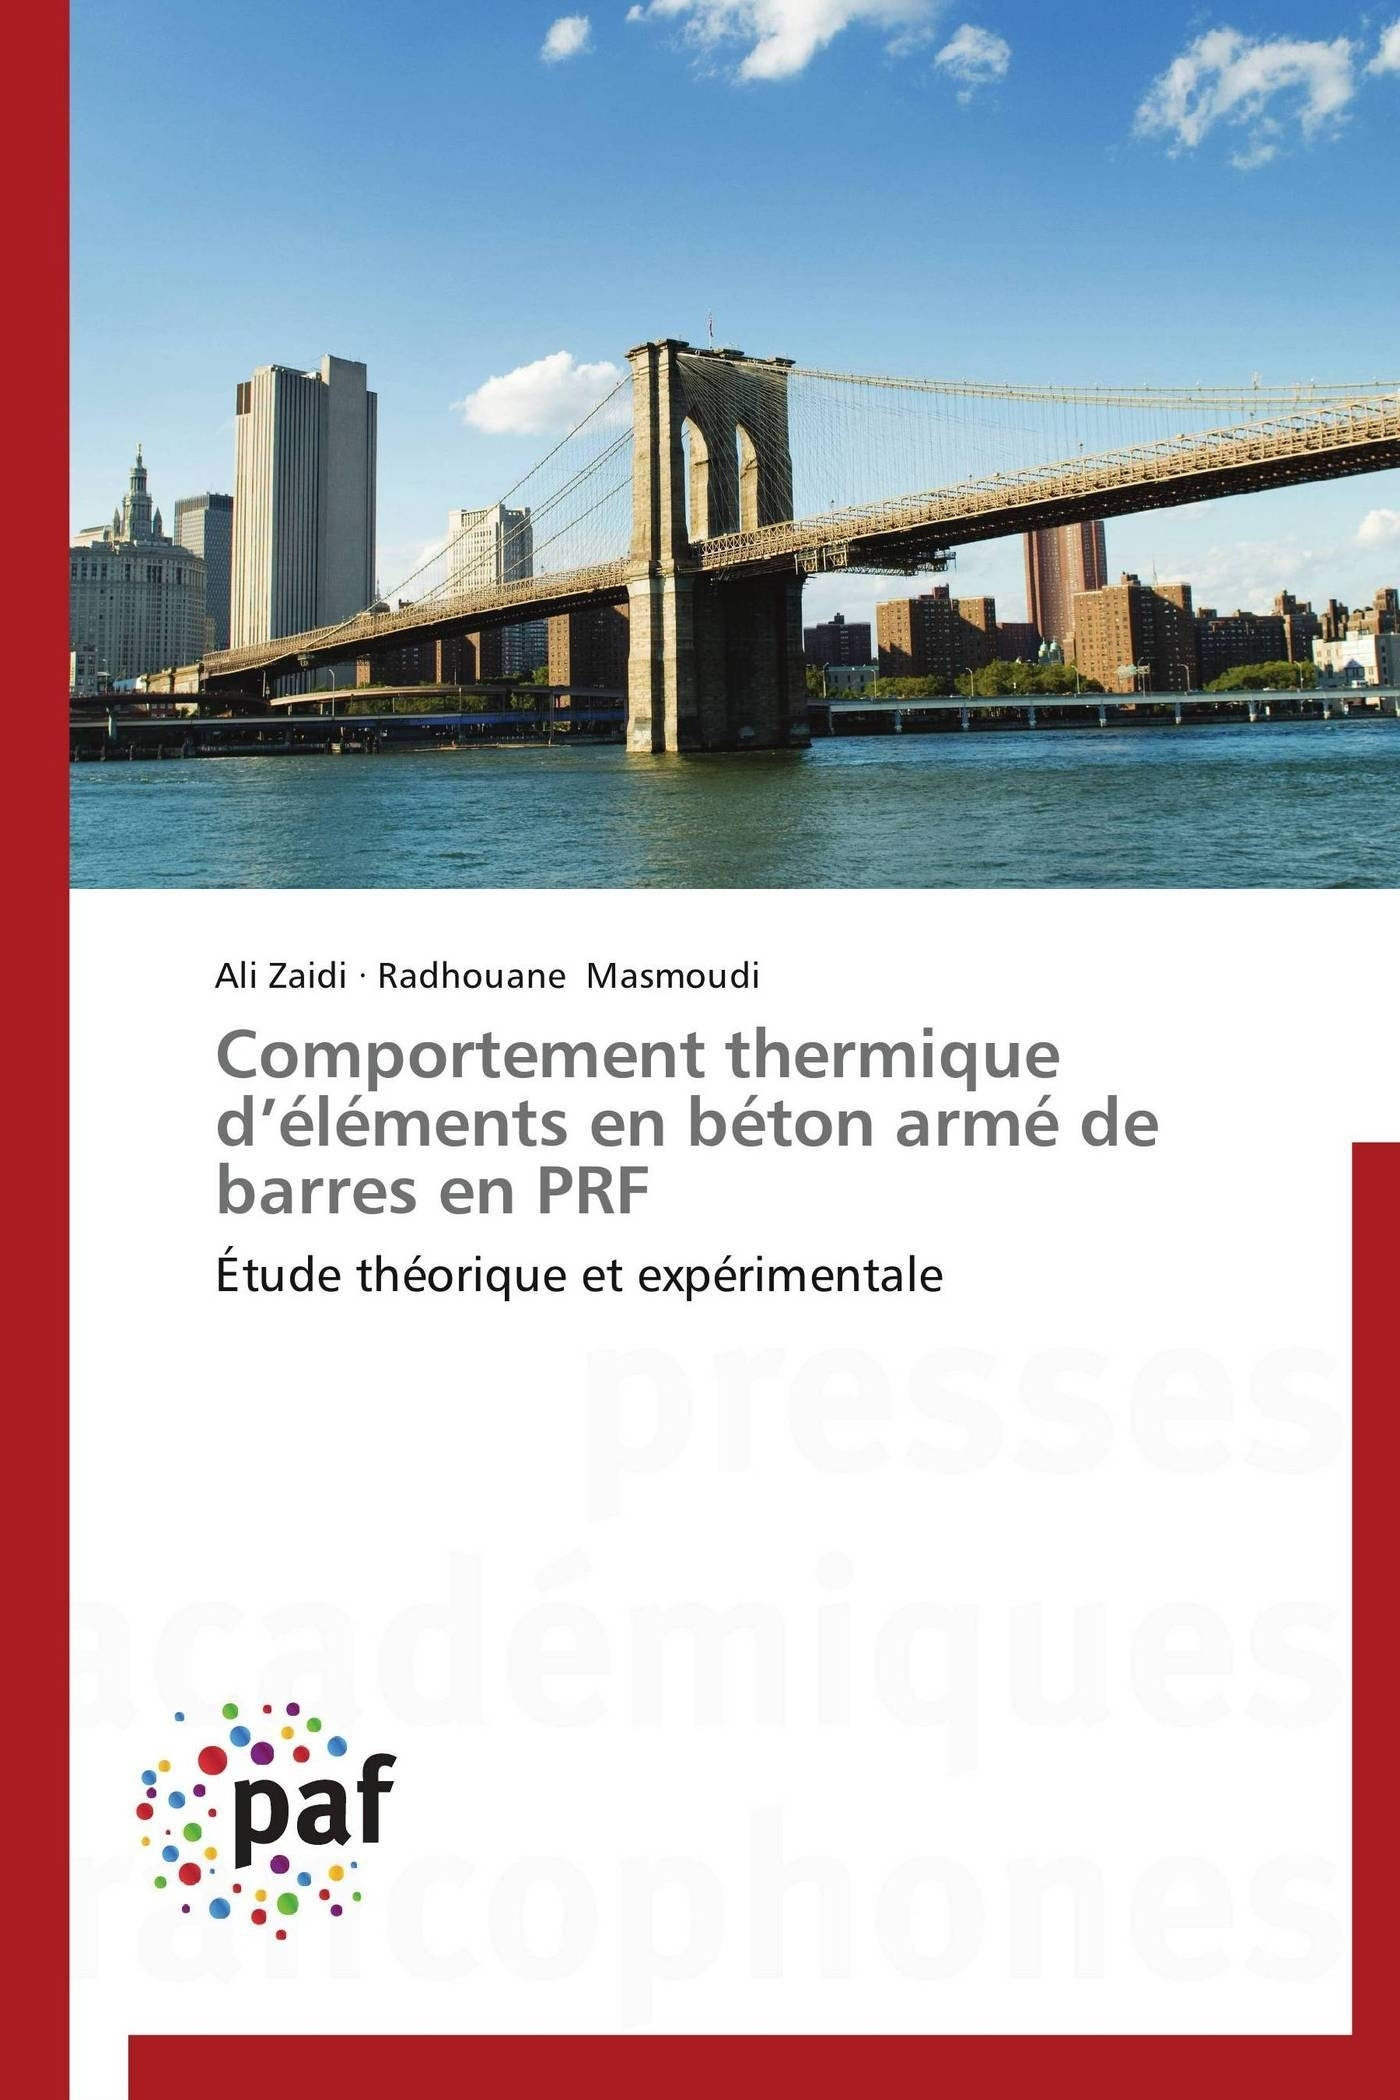 COMPORTEMENT THERMIQUE D ELEMENTS EN BETON ARME DE BARRES EN PRF